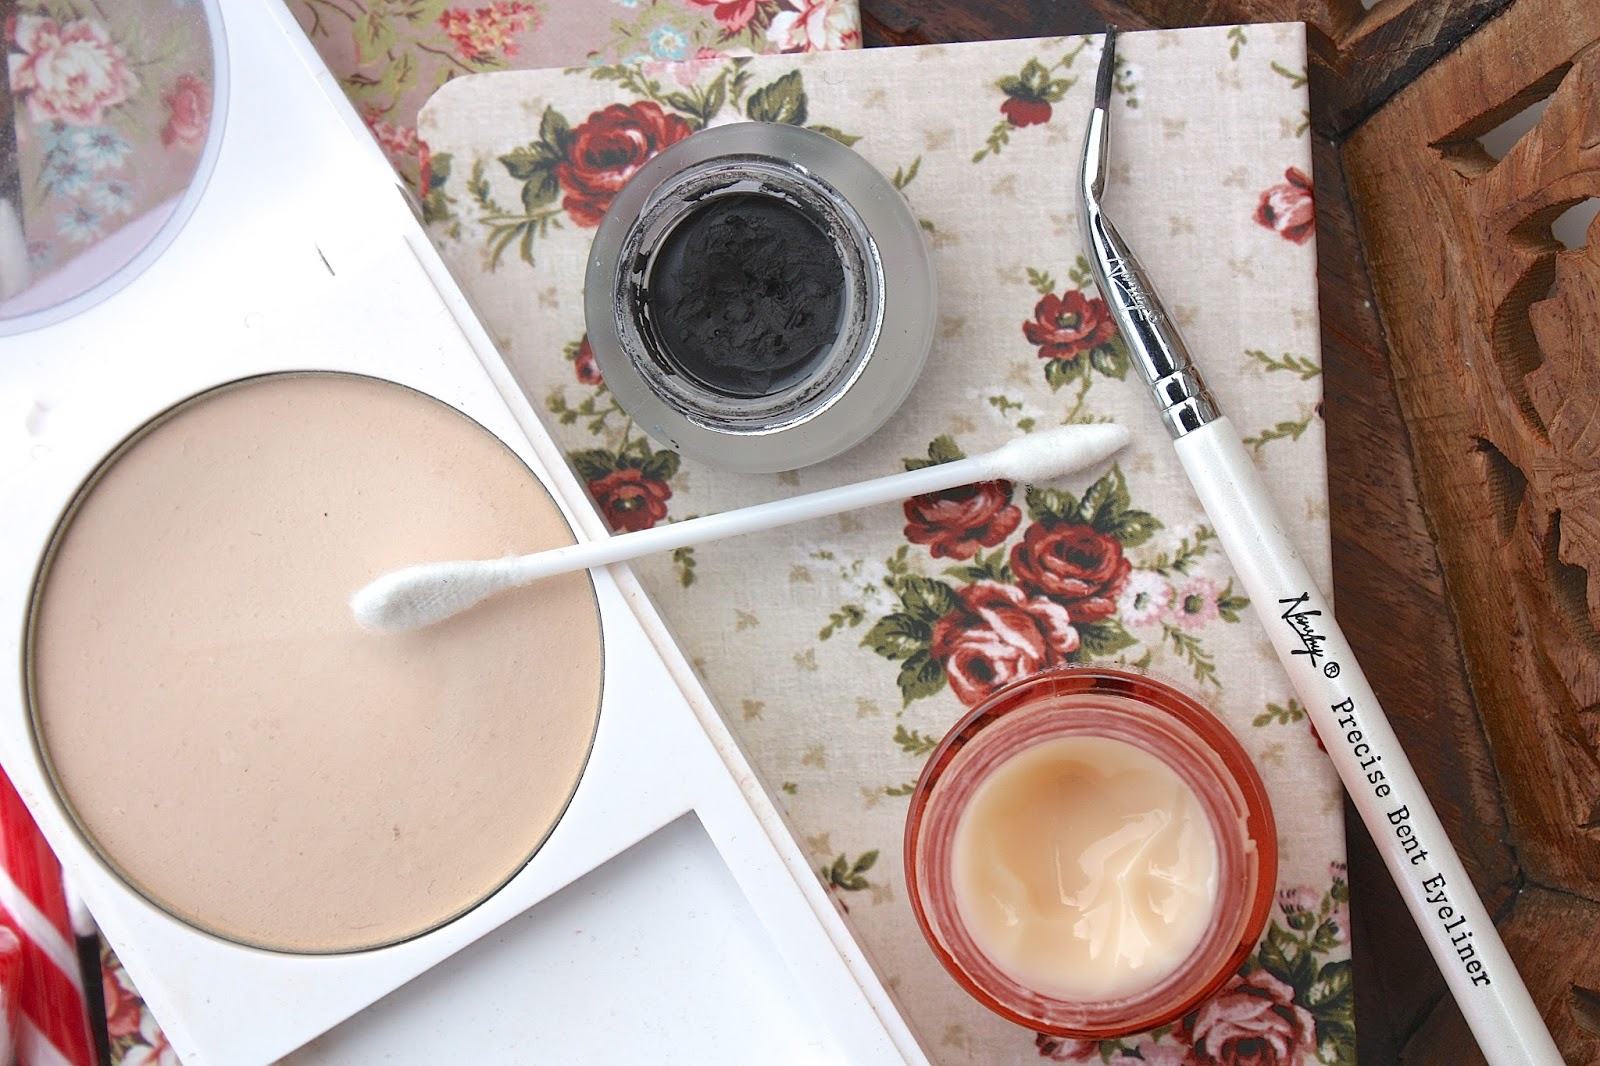 My Make up Touch Up Essentials